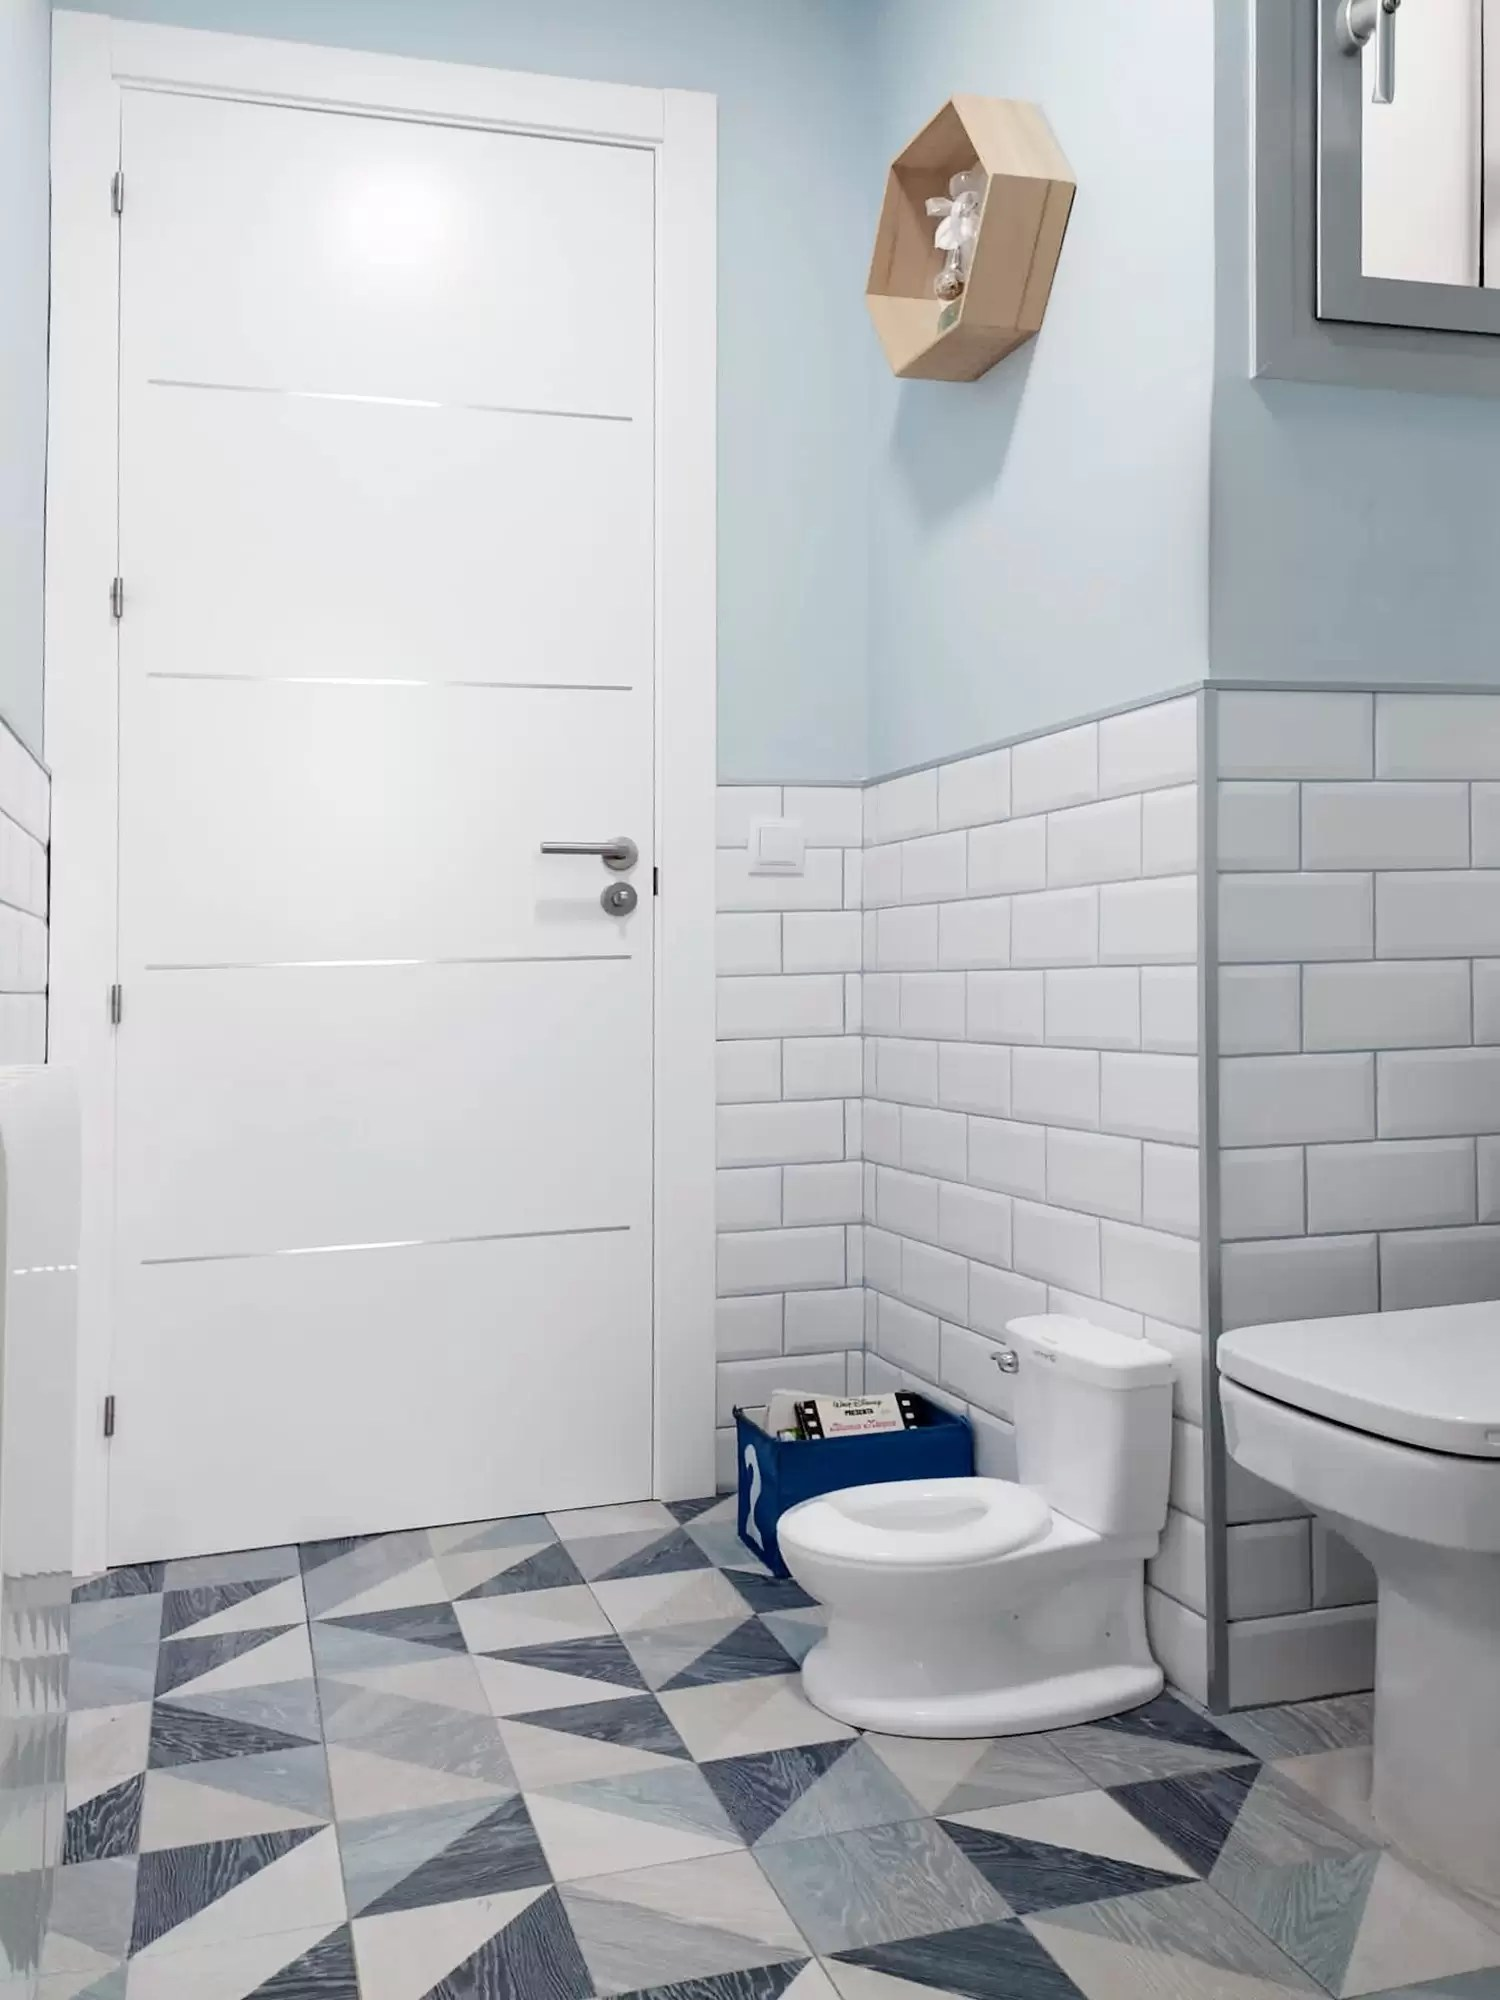 Gayafores bathroom project with Melange Blue